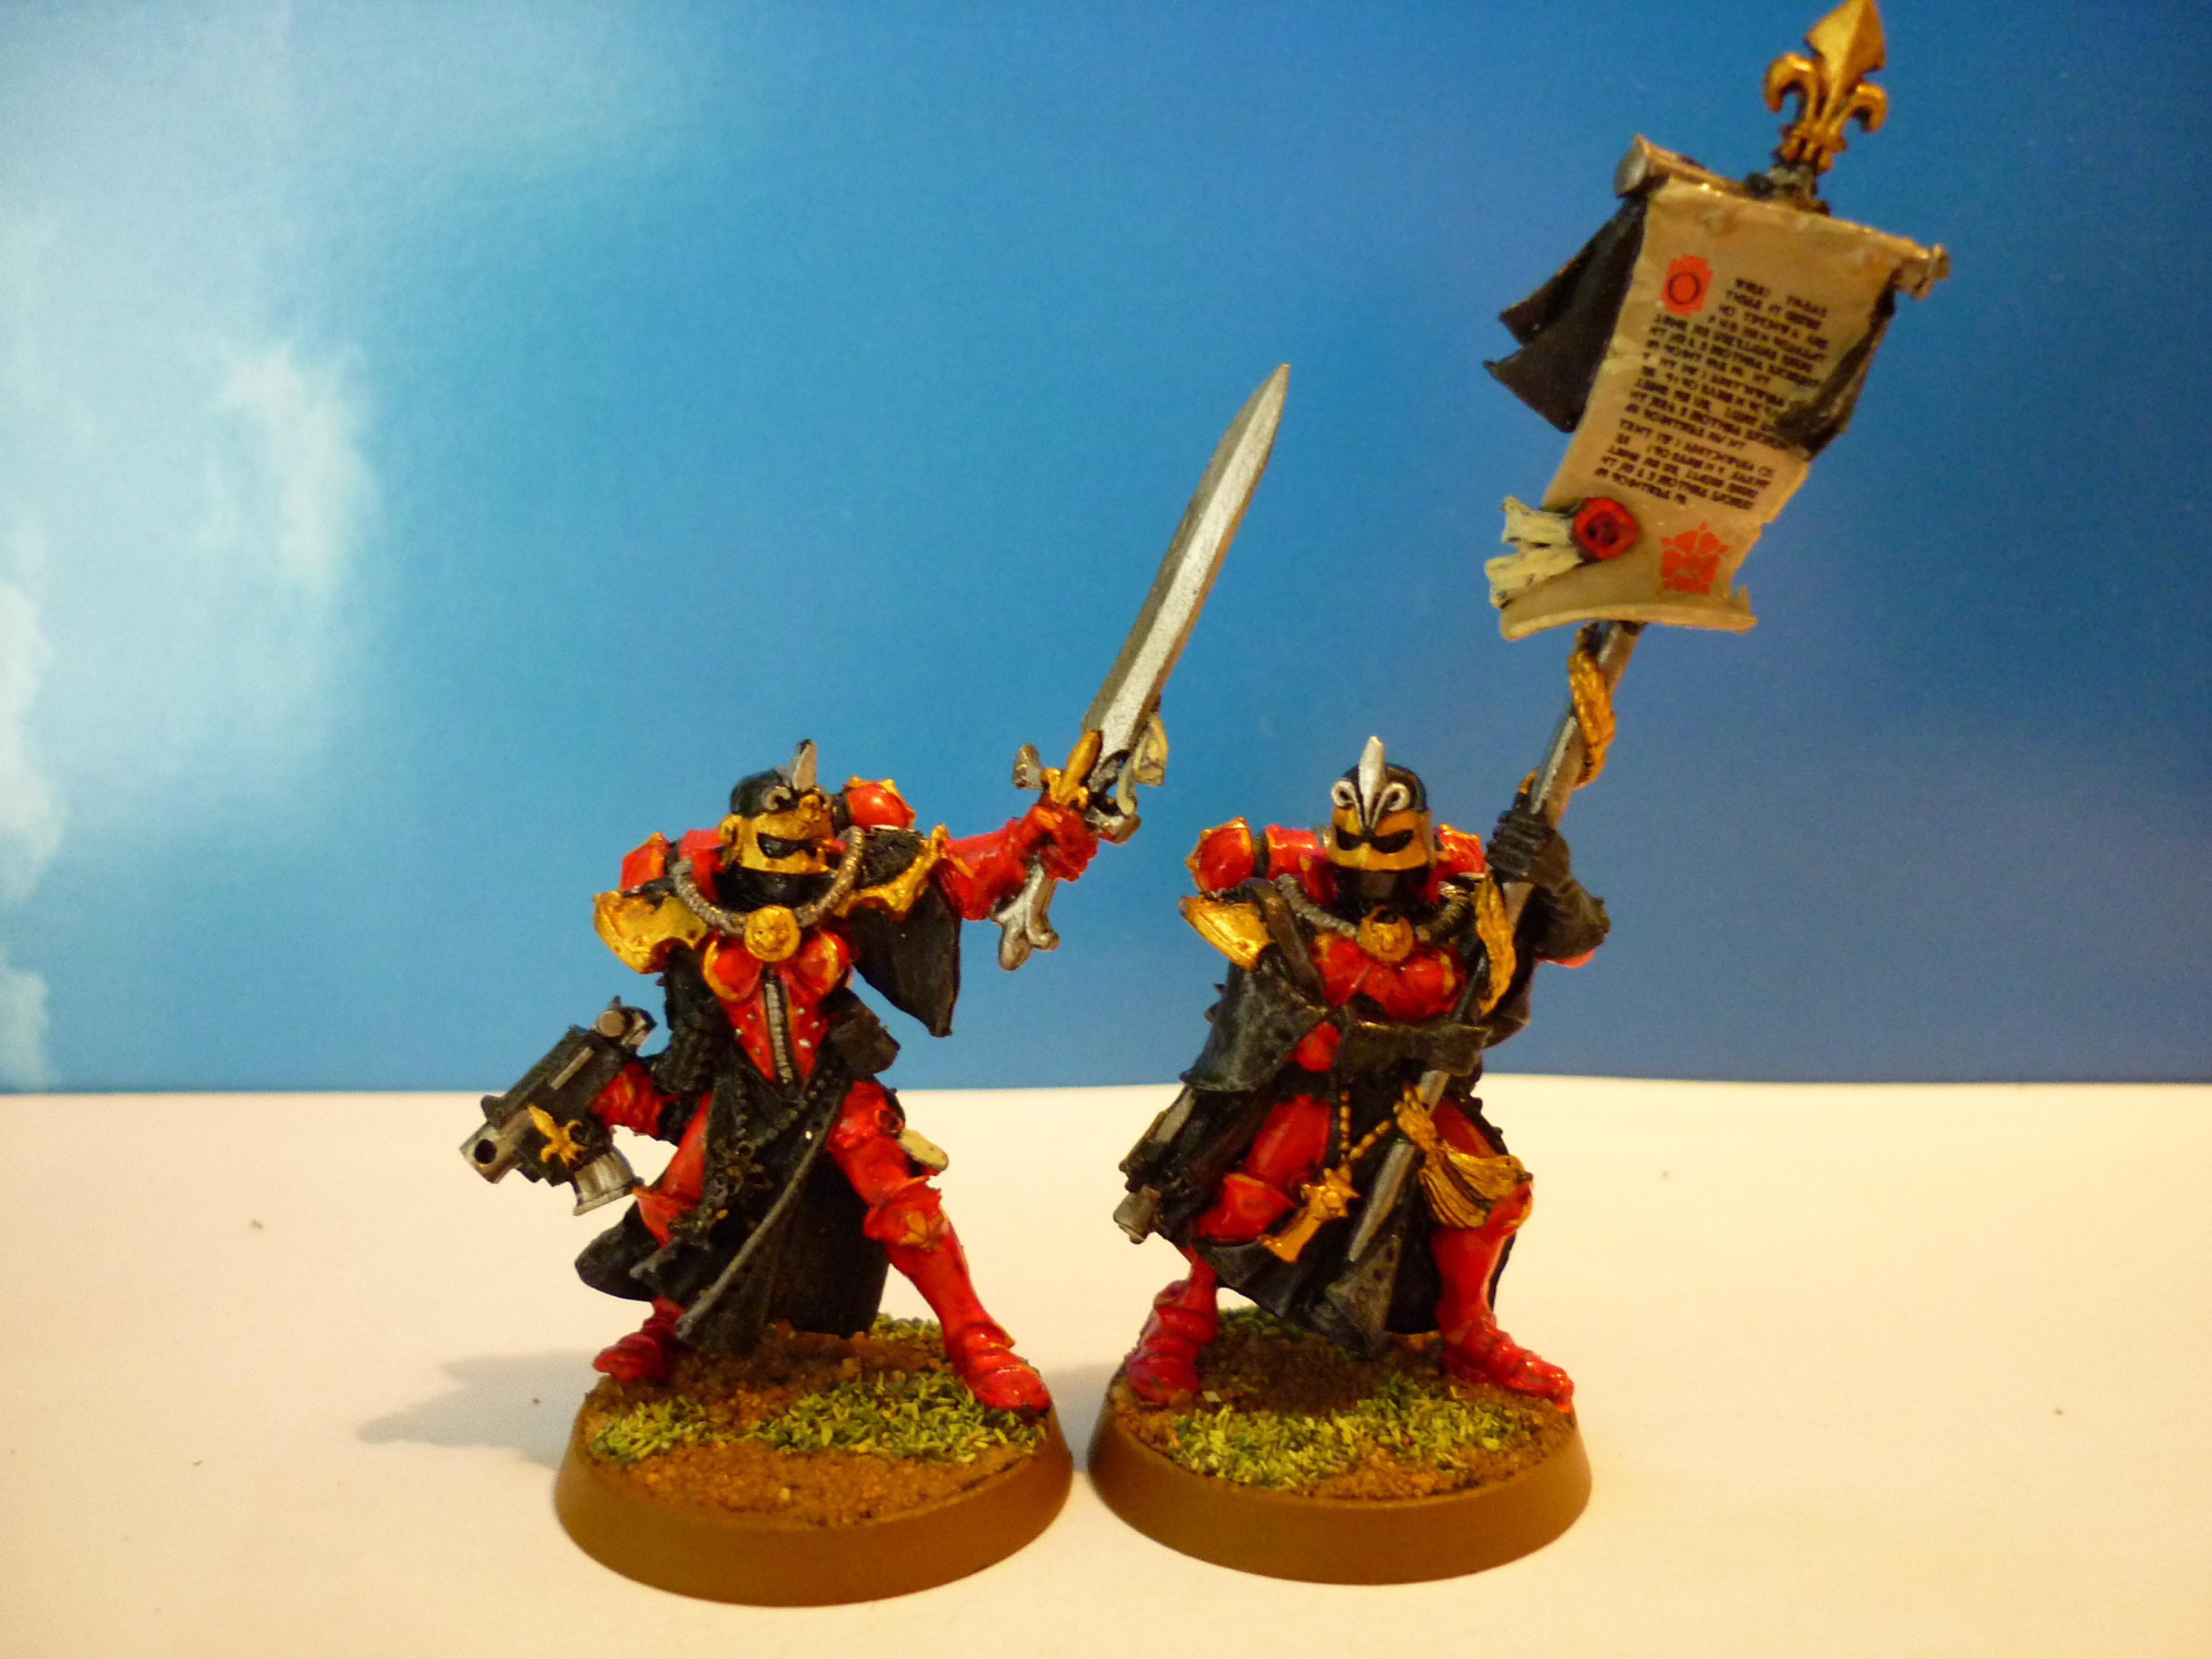 Sisters Of Battle, Warhammer 40,000, Witchhunters